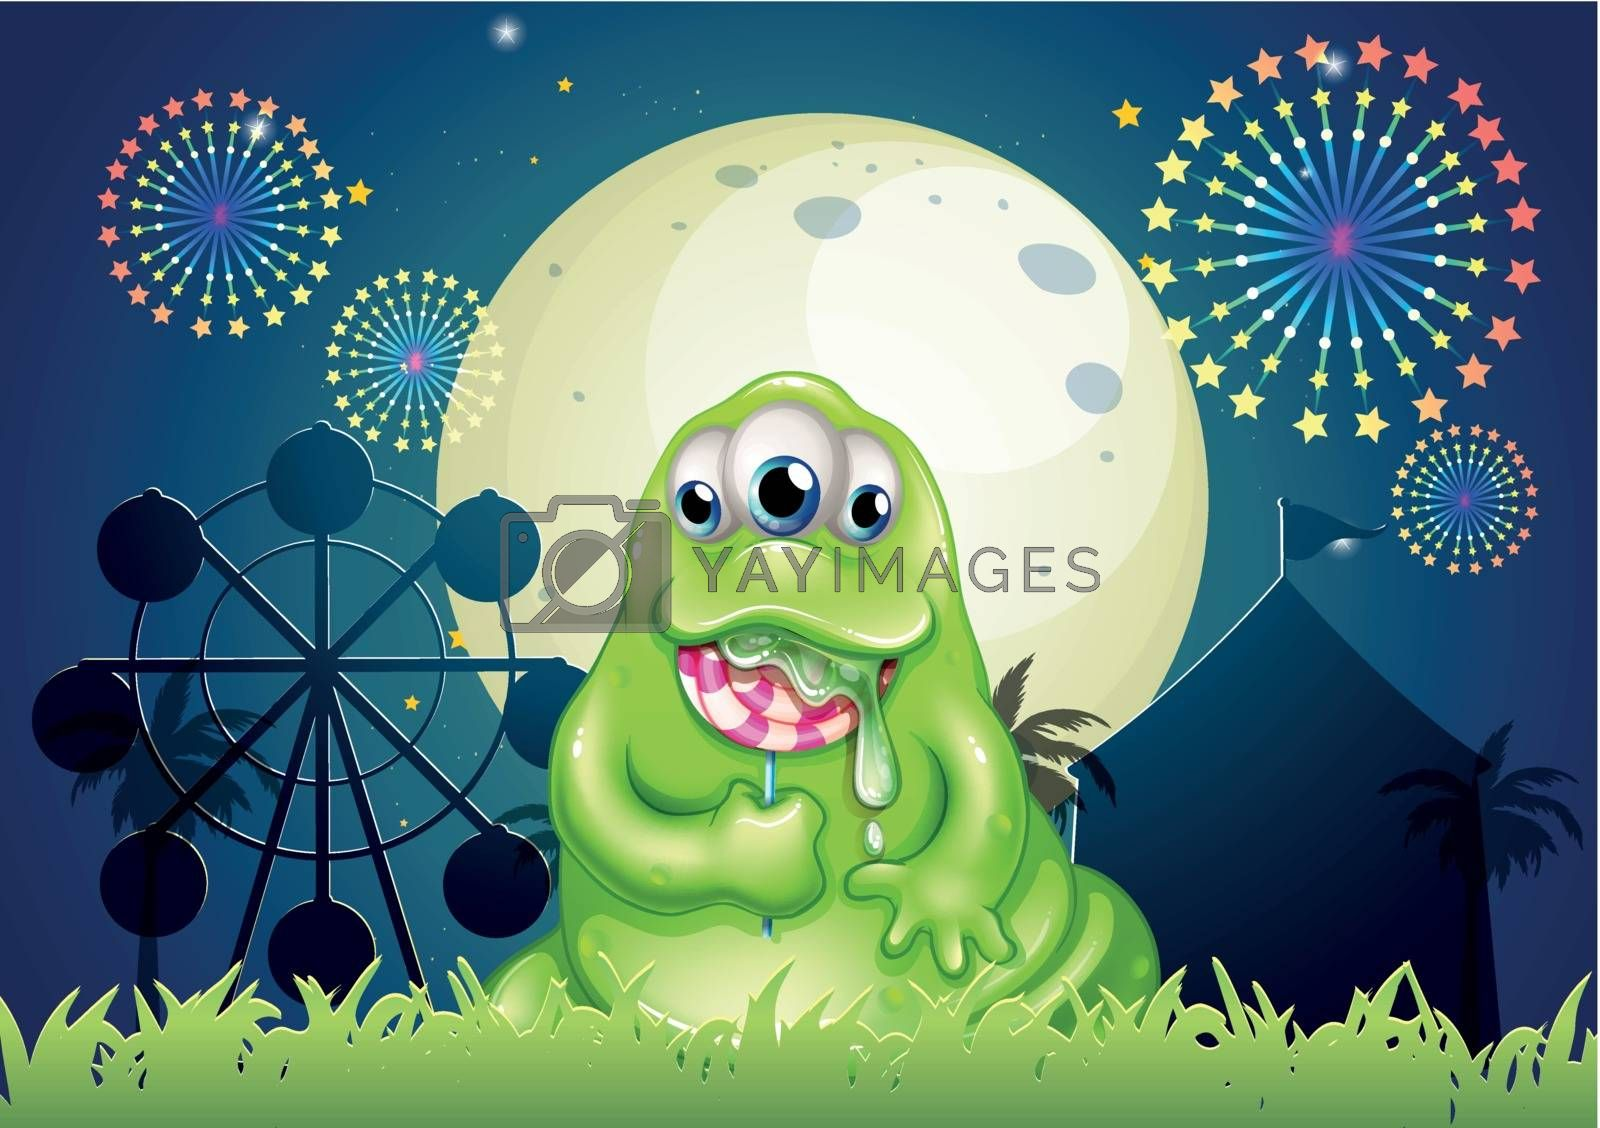 Illustration of a monster eating a lollipop at the amusement park